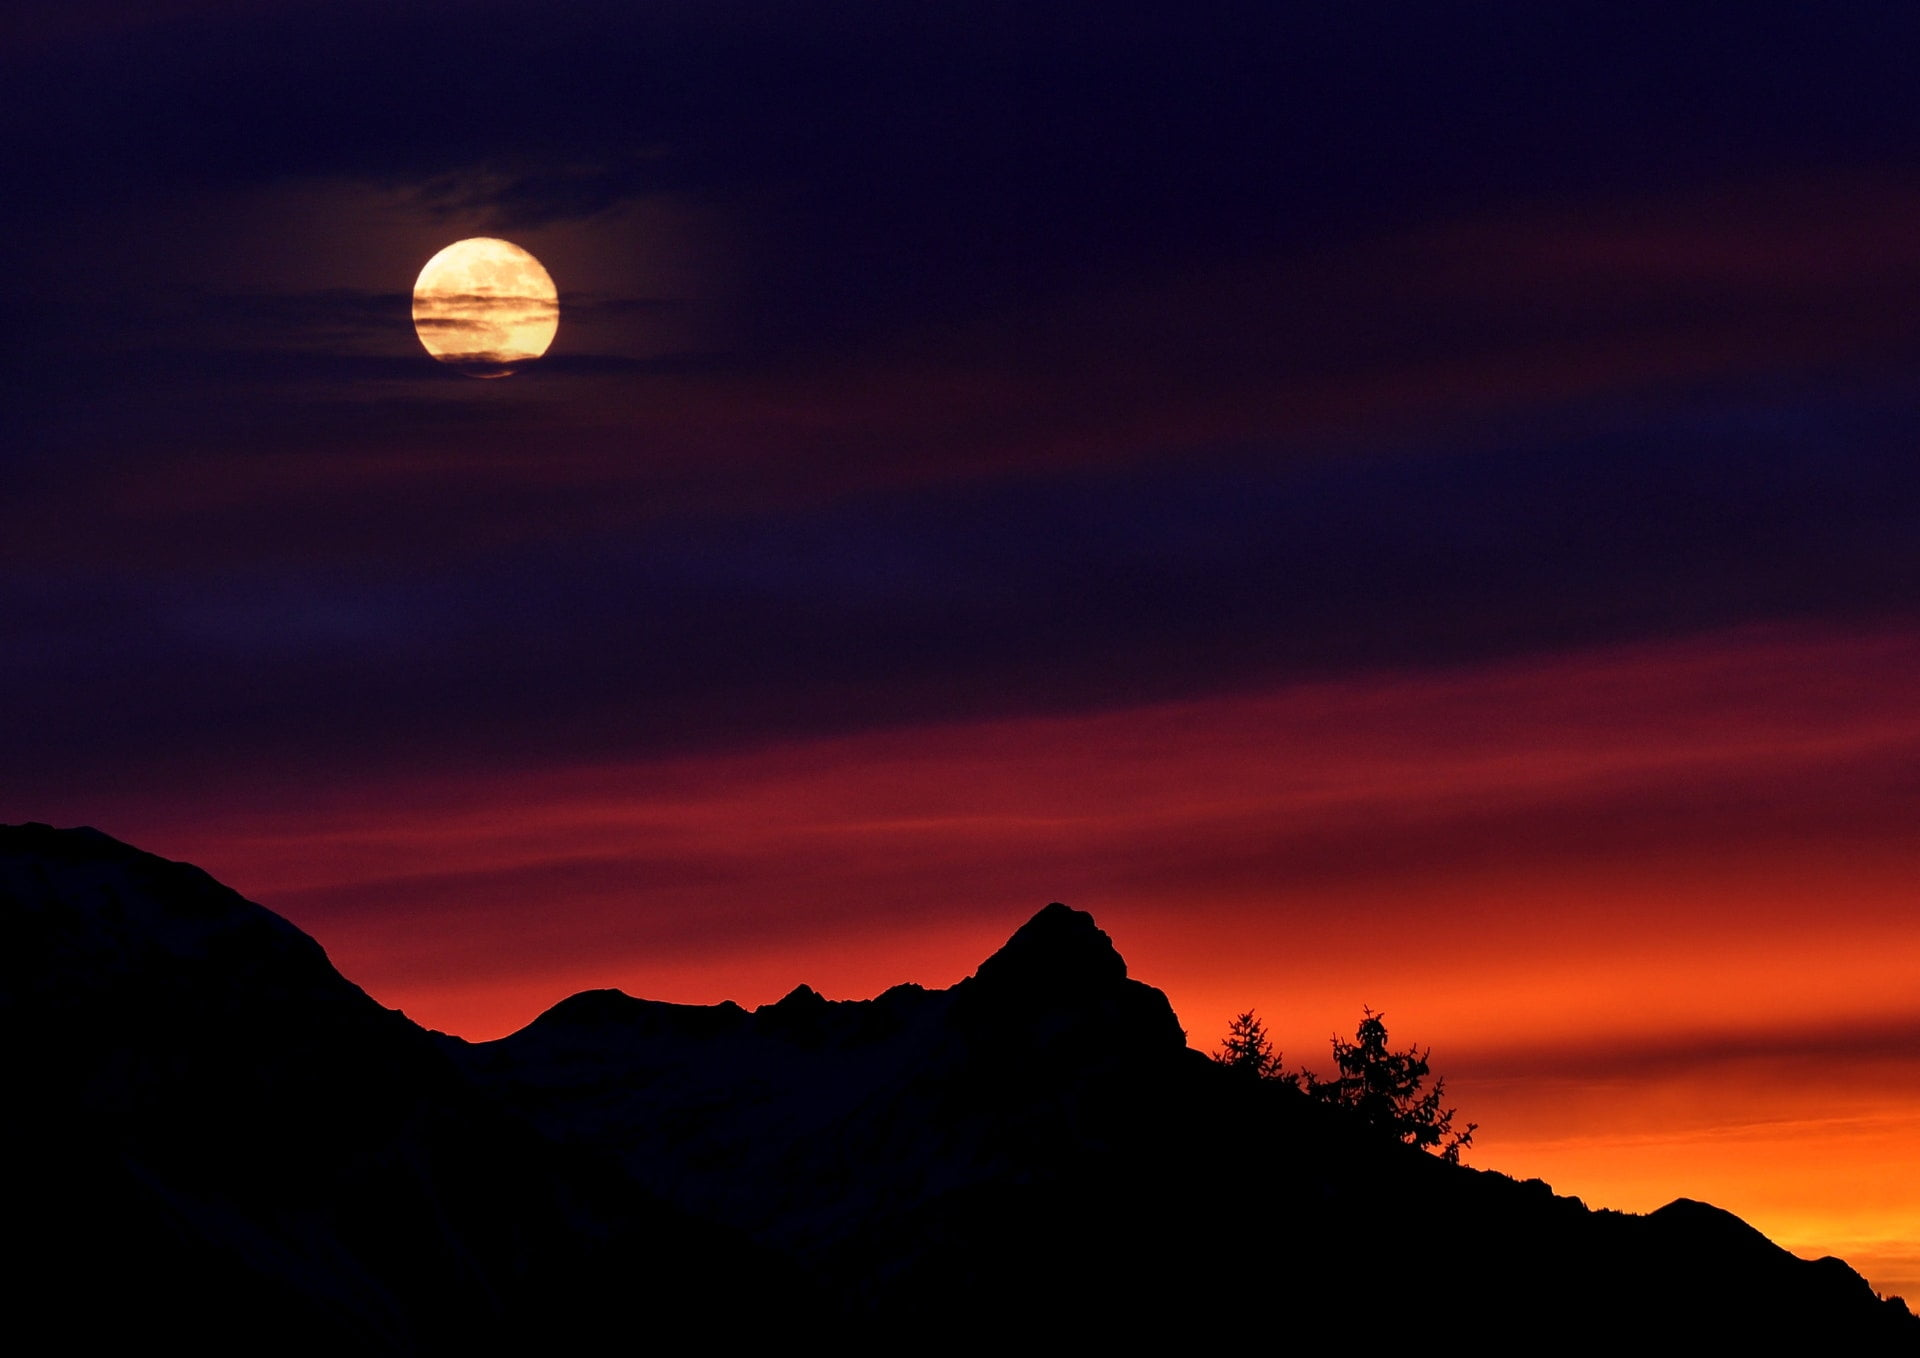 mountains sky sunrise lighting blood moon 1 一絲|子明一行詩